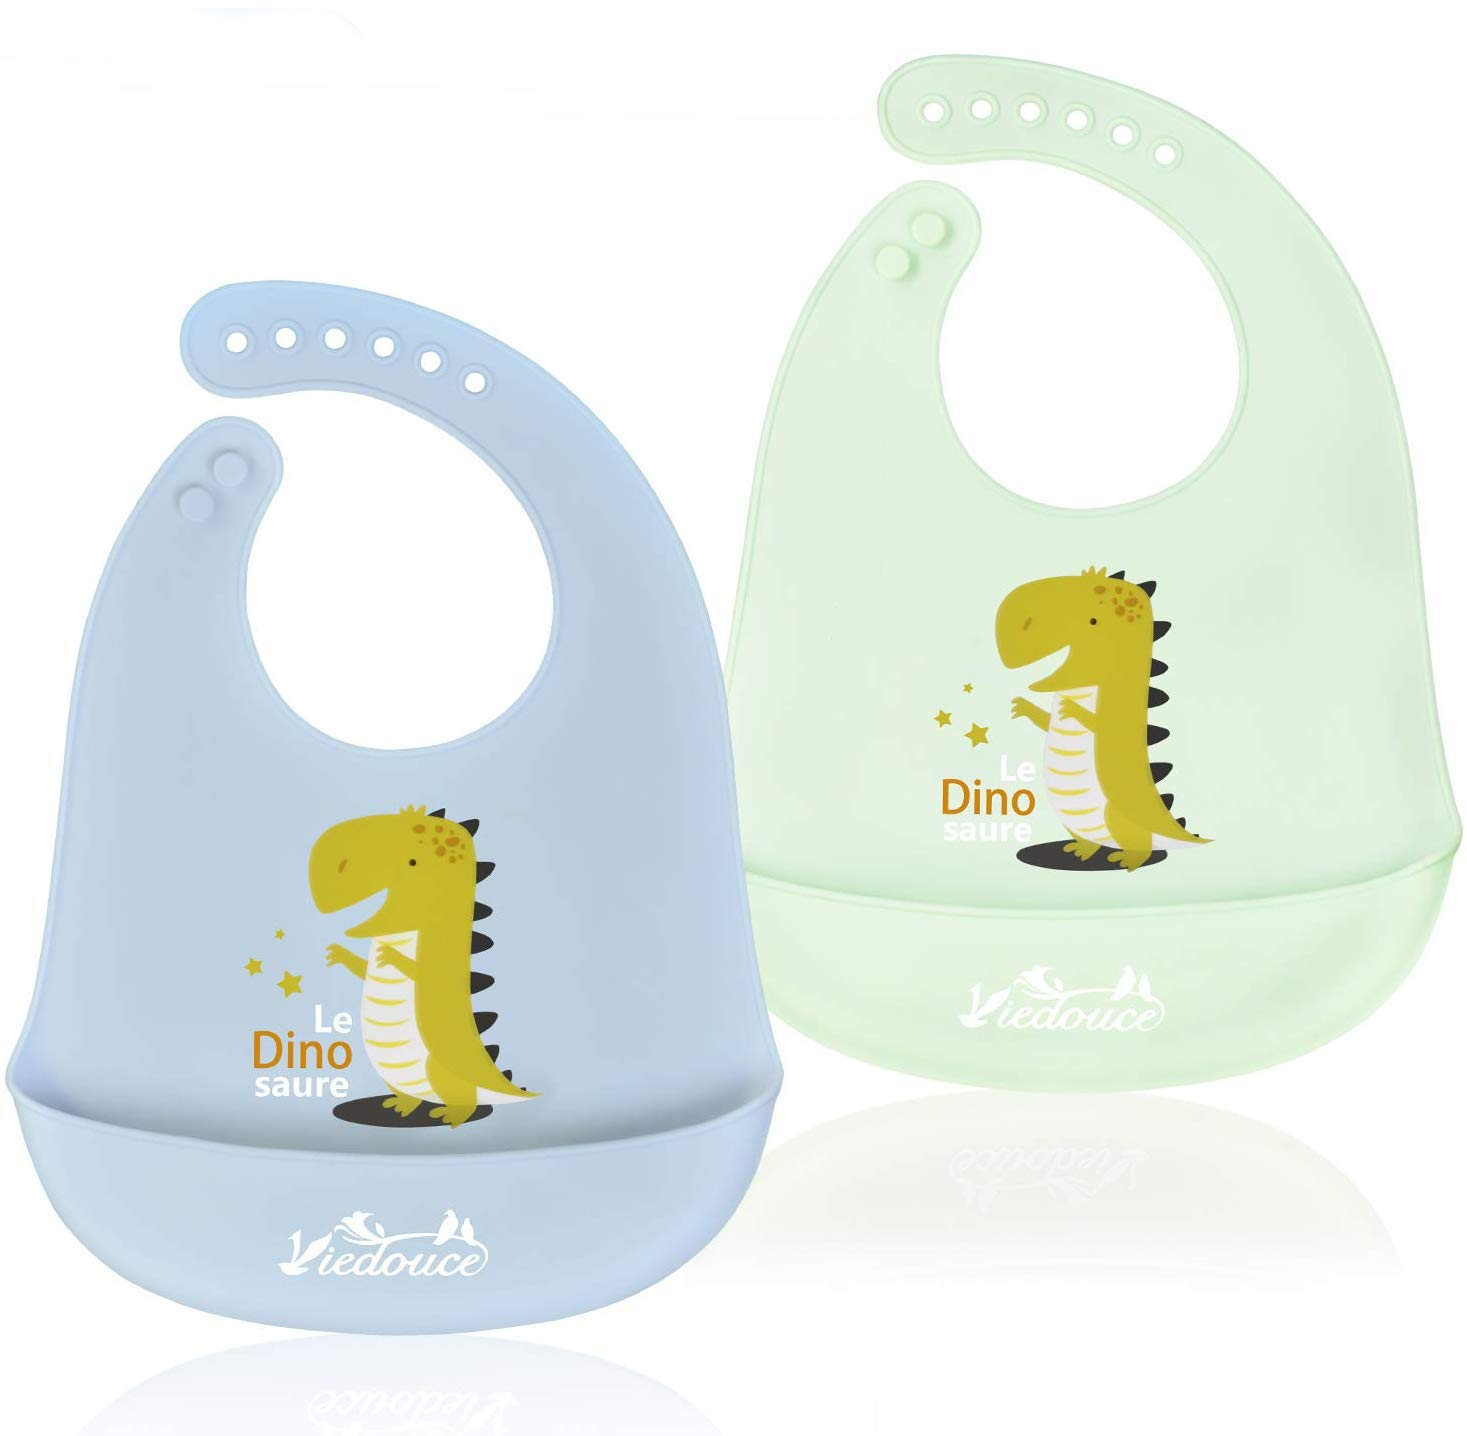 Viedouce Baby Bibs Silicone Toddler Bibs with Food Catcher Pocket, Blue Mint 2 Pack